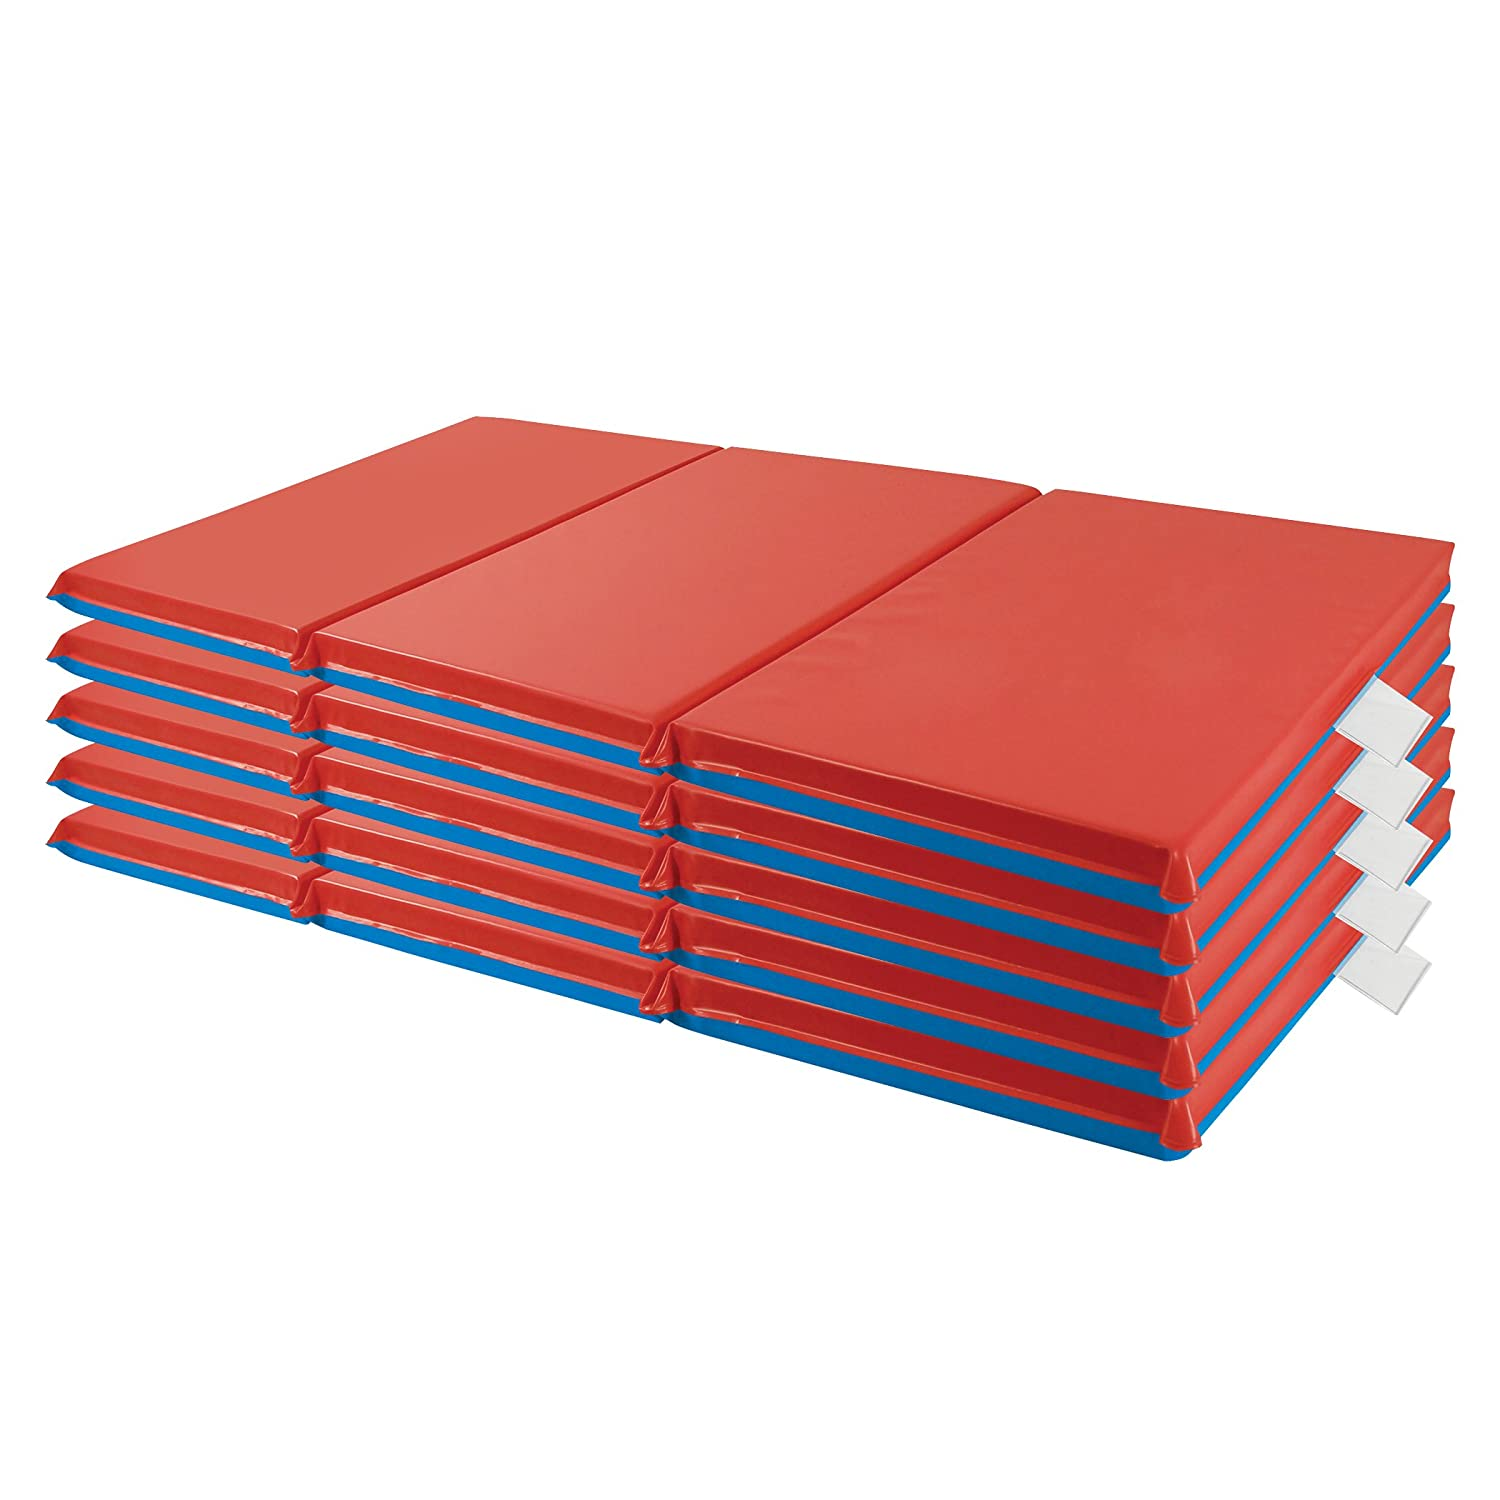 ECR4Kids Premium 3-Fold Daycare Rest Mat, Blue and Red, 1 Thick (5-Pack) 1 Thick (5-Pack) ELR-0574-CSPK